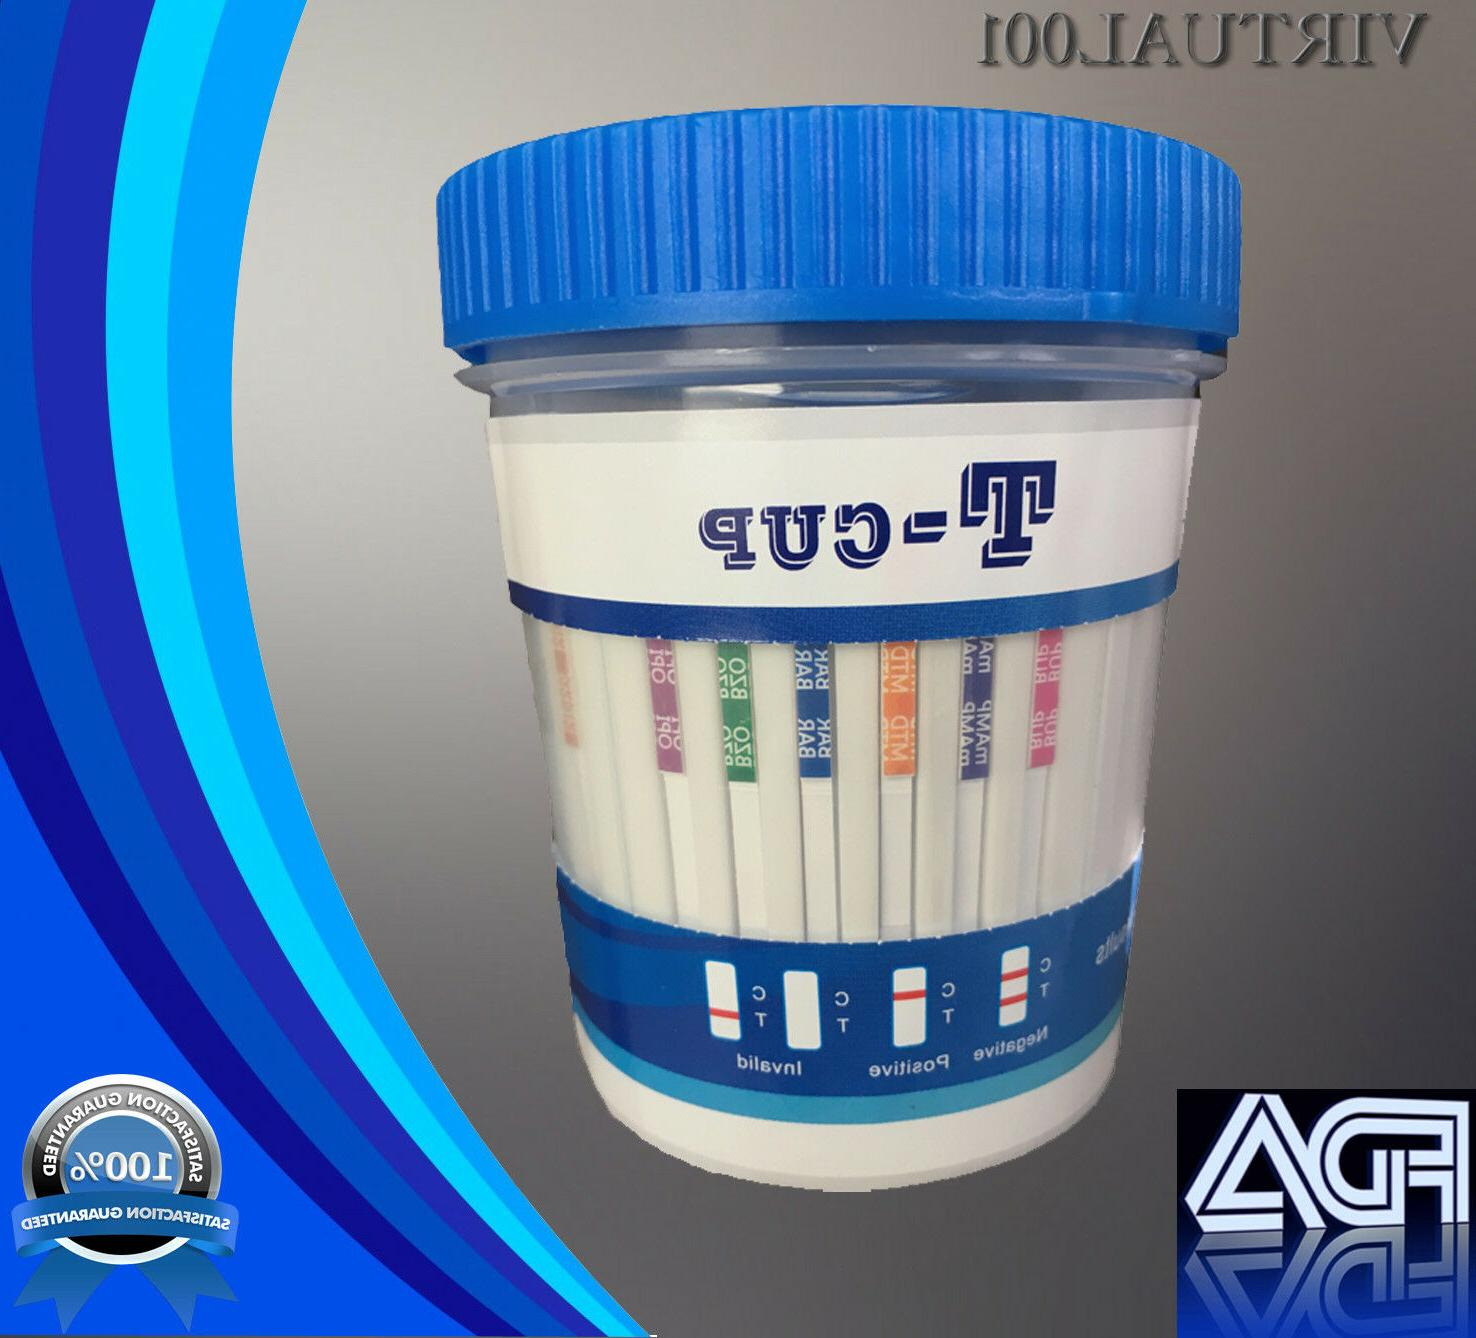 14 panel drug testing kit 3 urine